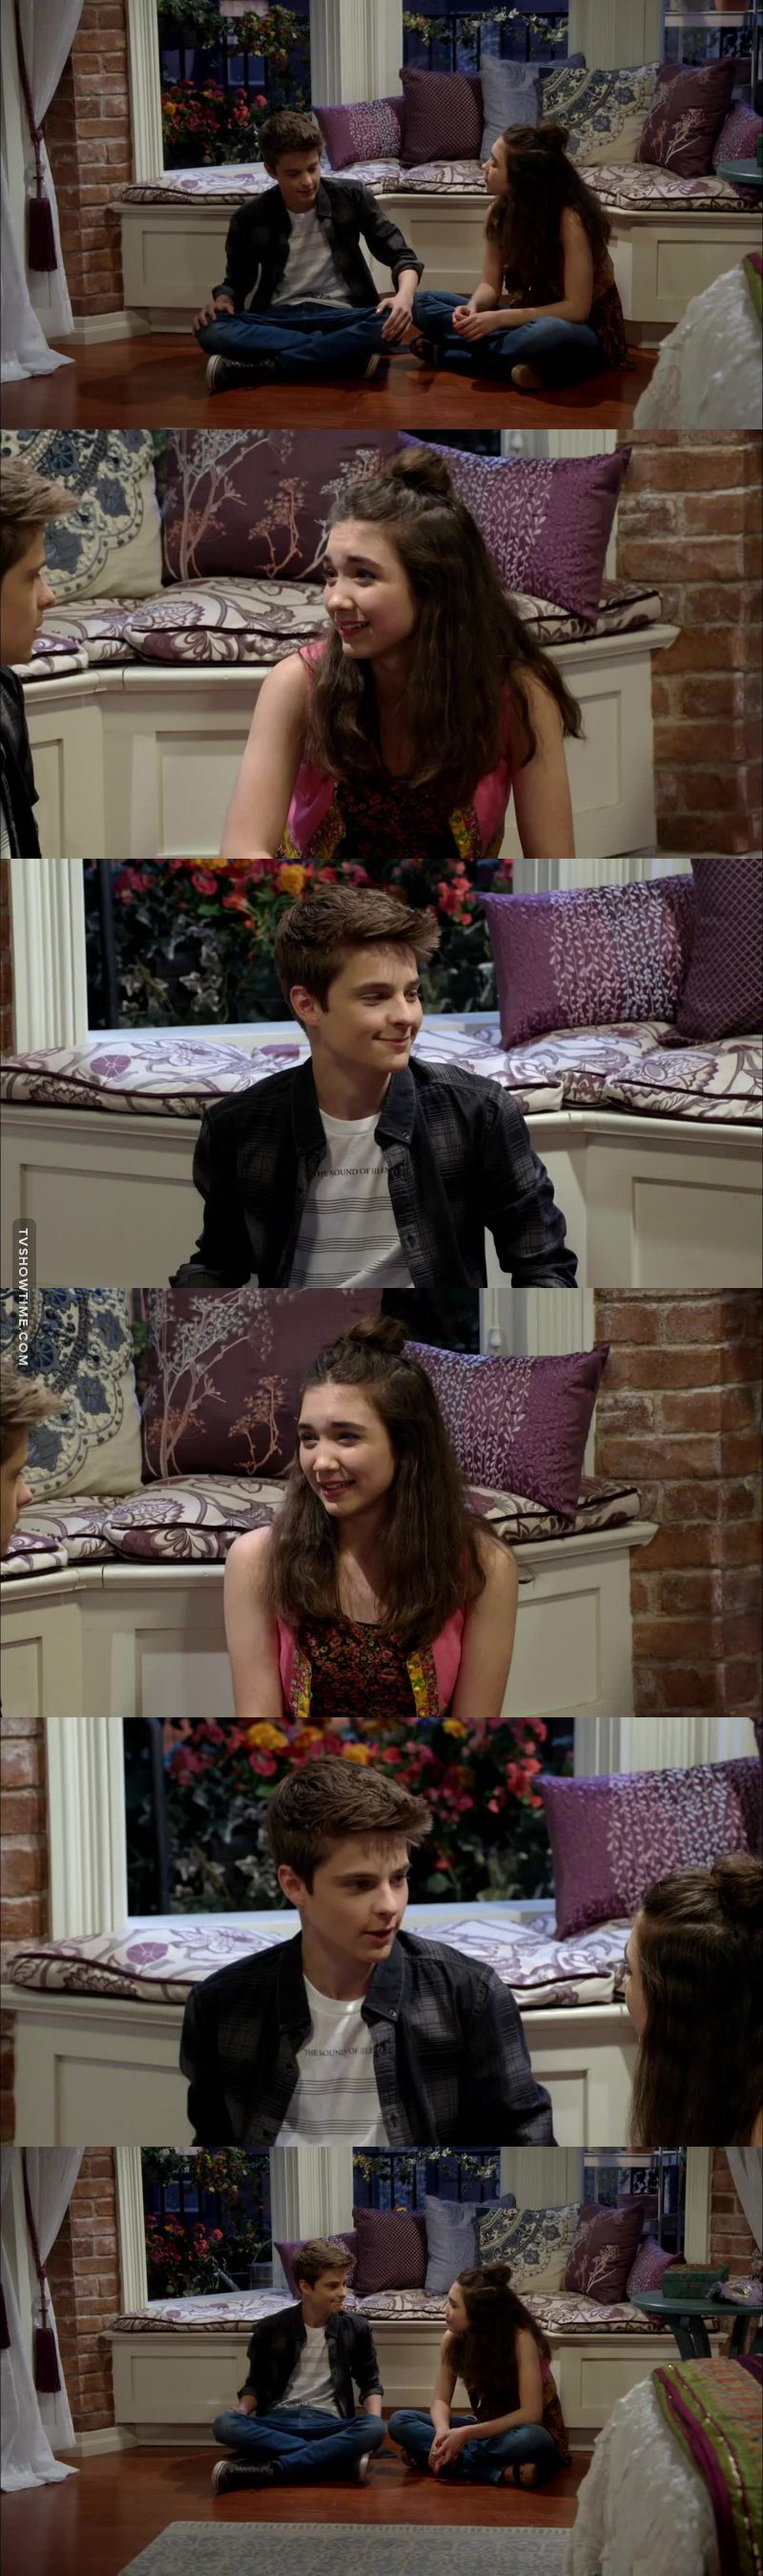 girl meets world time Welcome to a high quality gallery providing screencaps of disney and nickelodeon channelsyou'll be able to find both 720p and 1080p quality screencaps here.